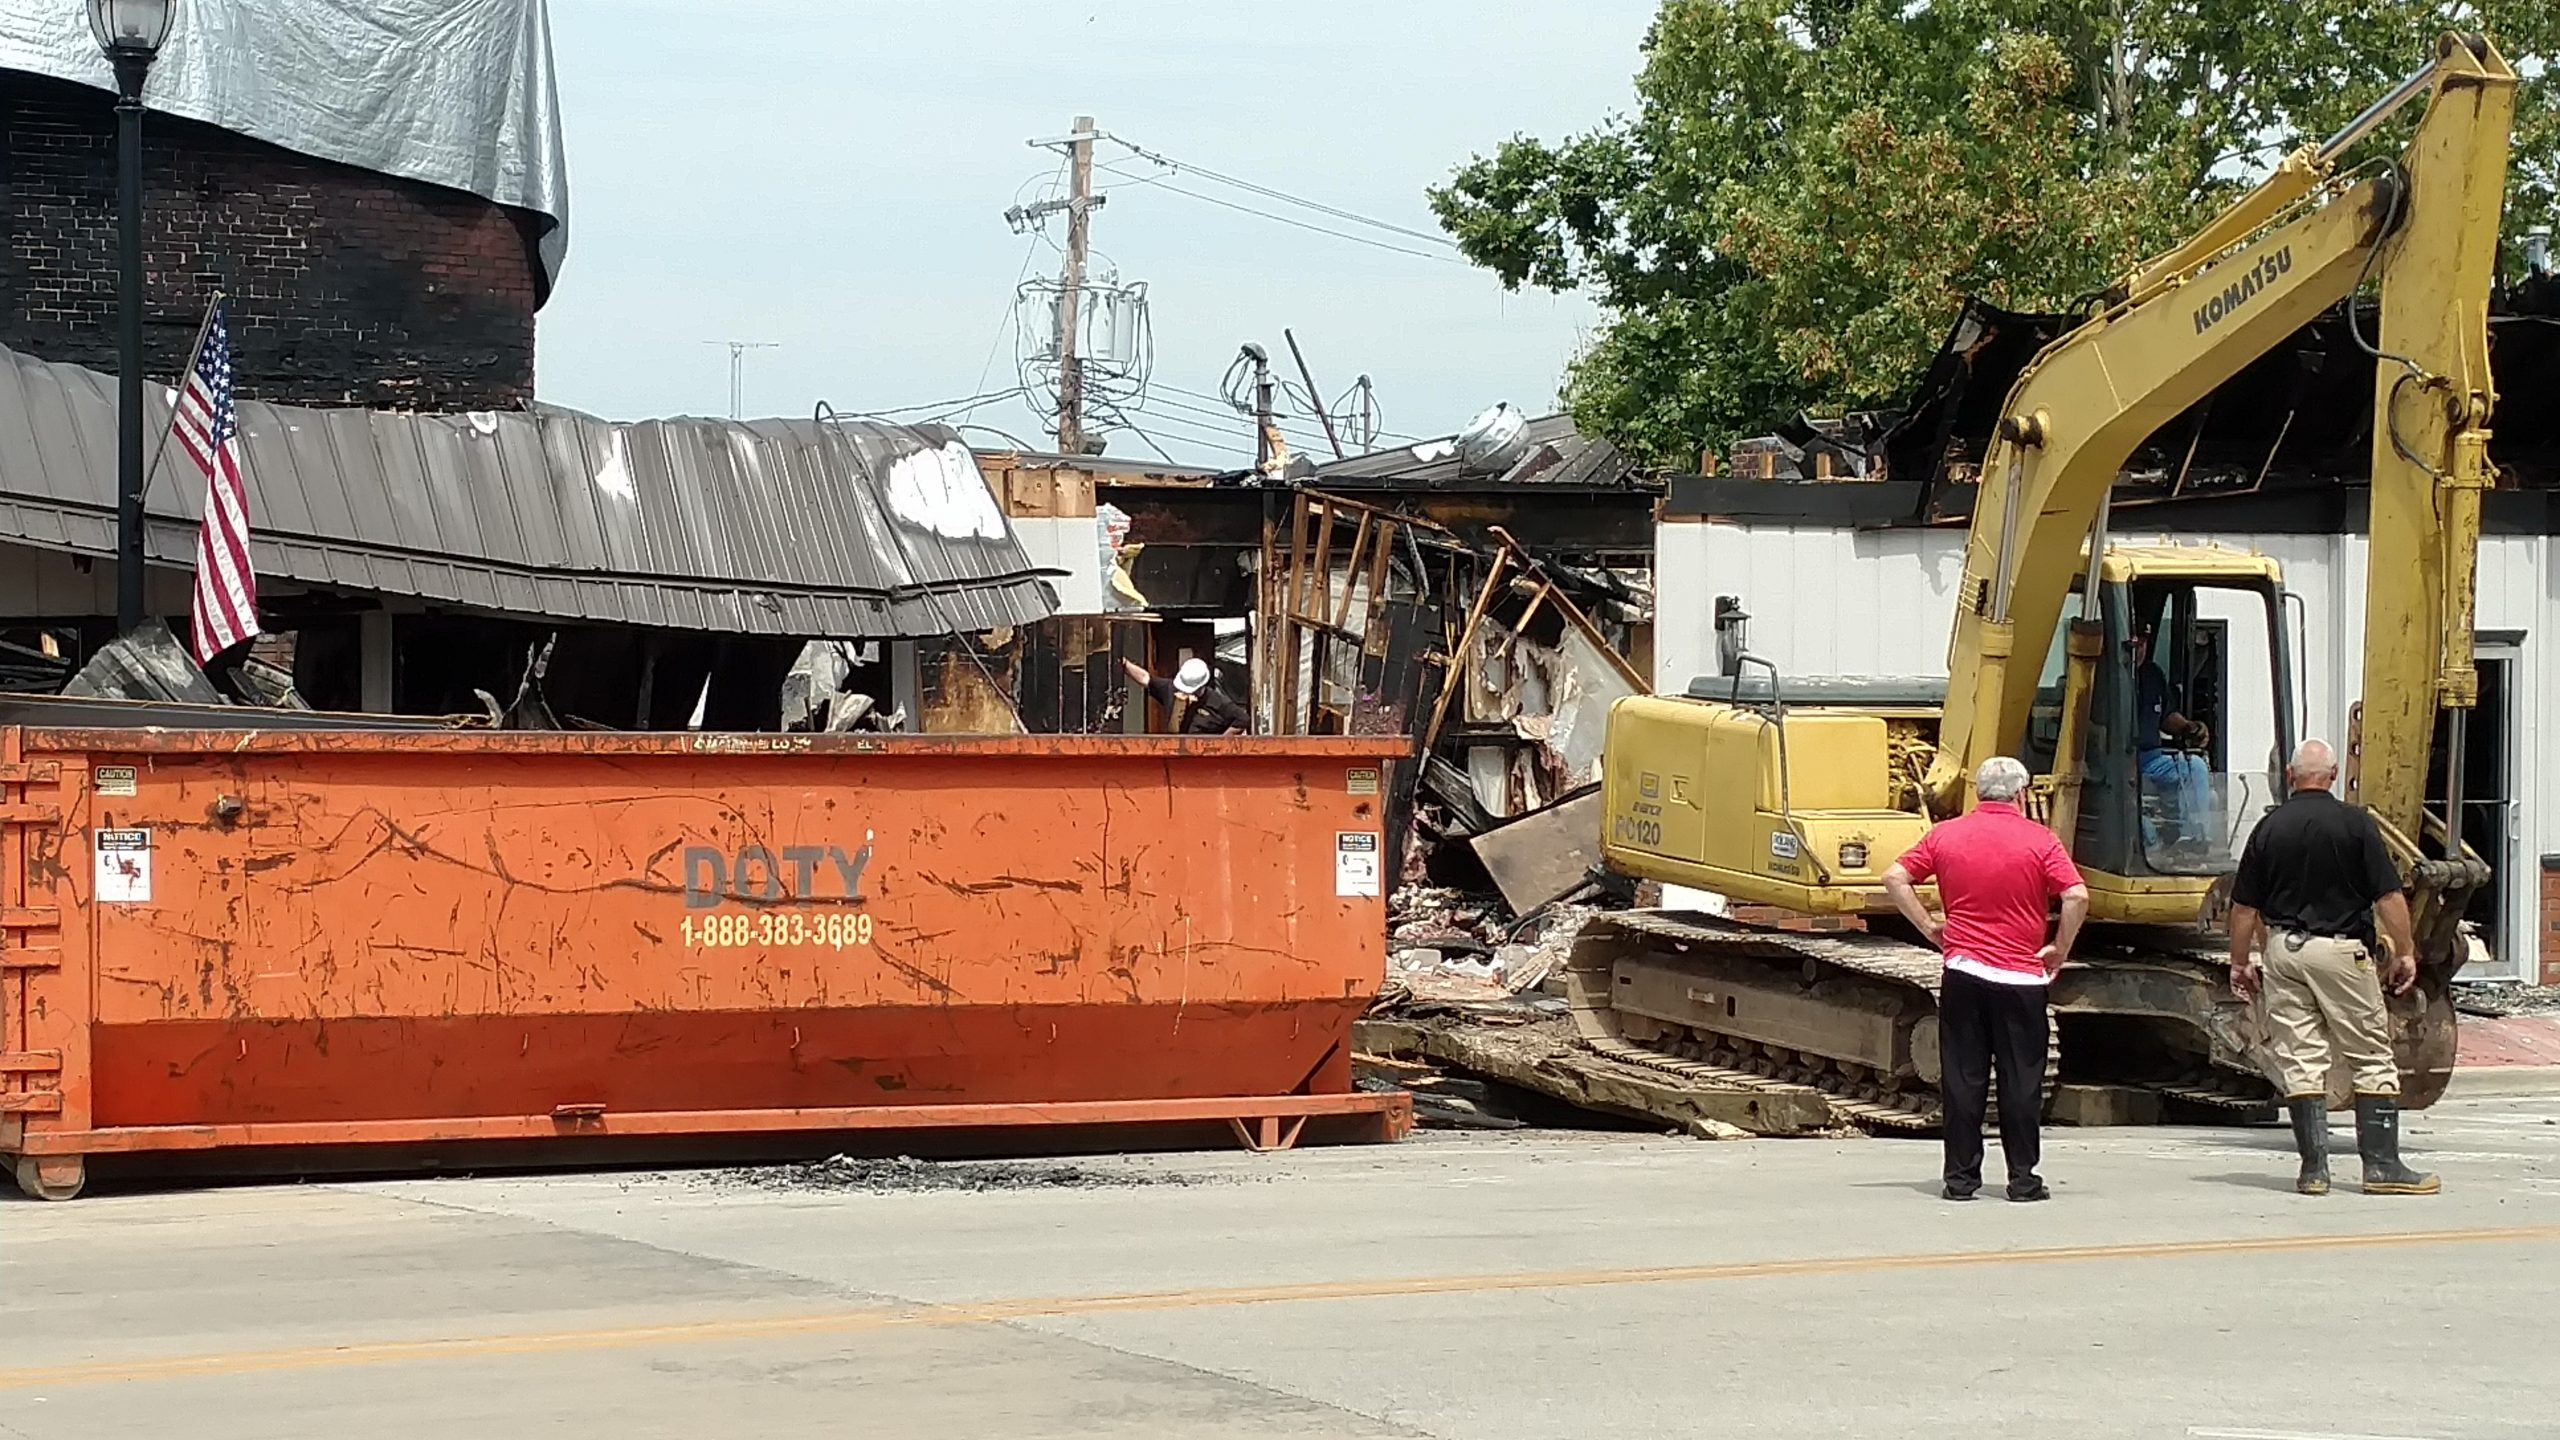 Vandalia Mayor Gottman talks about downtown fire---some clean up underway today